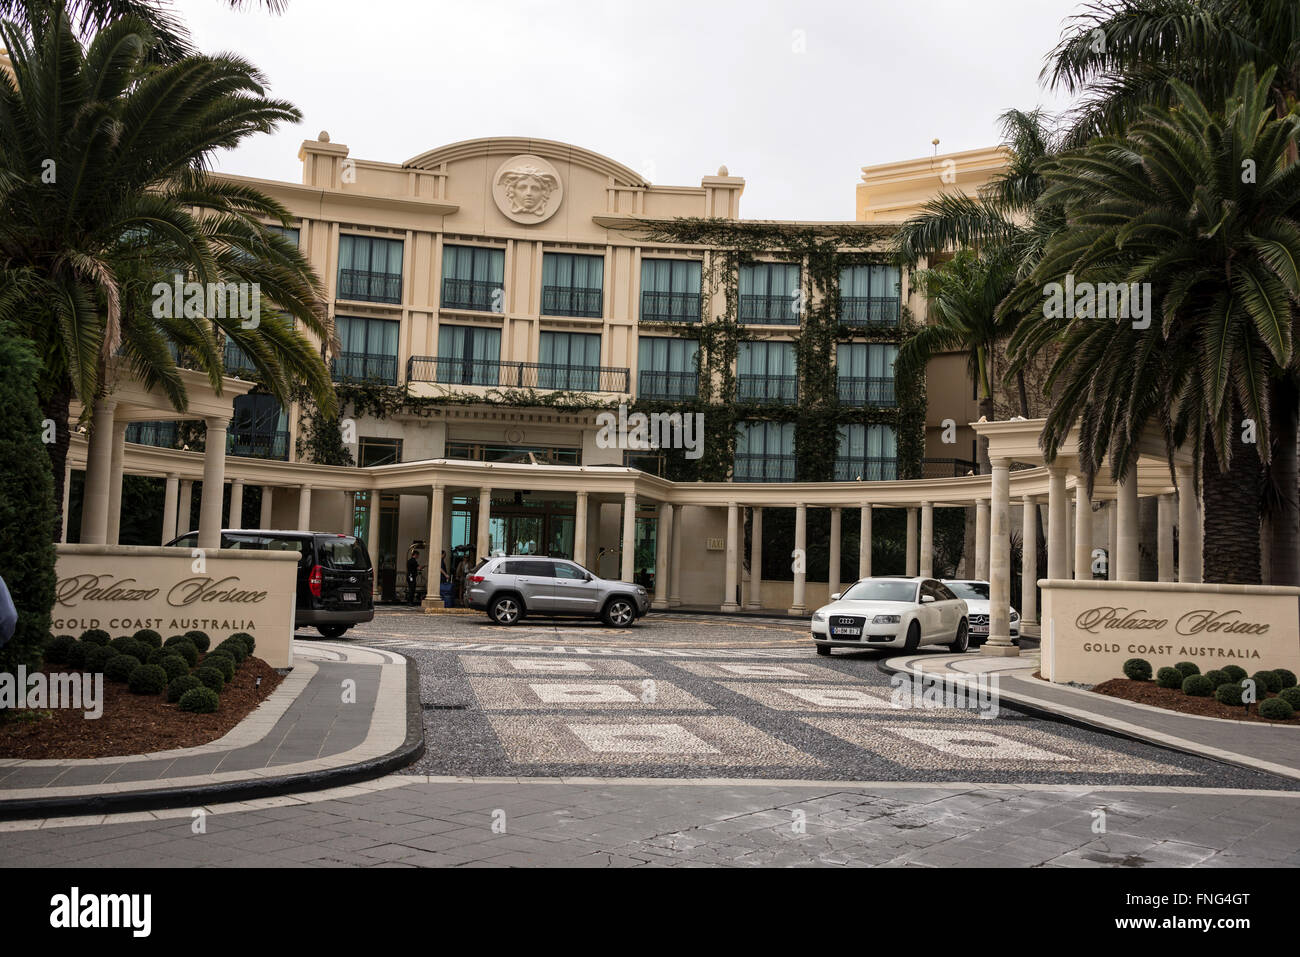 The 5 Star Palace Versace On Seaward Drive Main Beach On The Gold